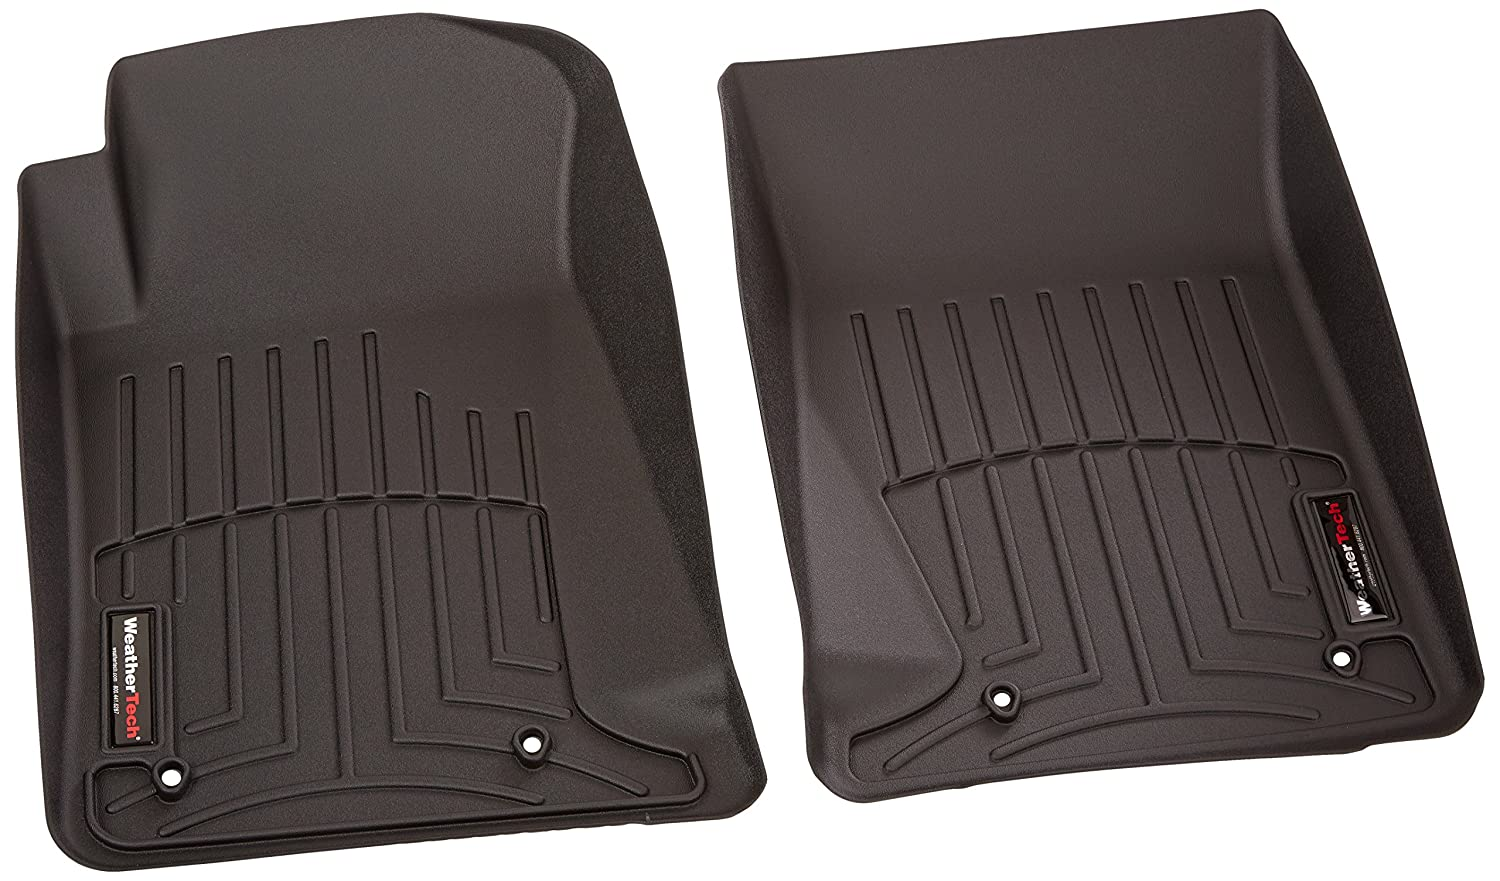 How to unlock weathertech floor mats - Amazon Com Weathertech Custom Fit Front Floorliner For Chevrolet Camaro Black Automotive